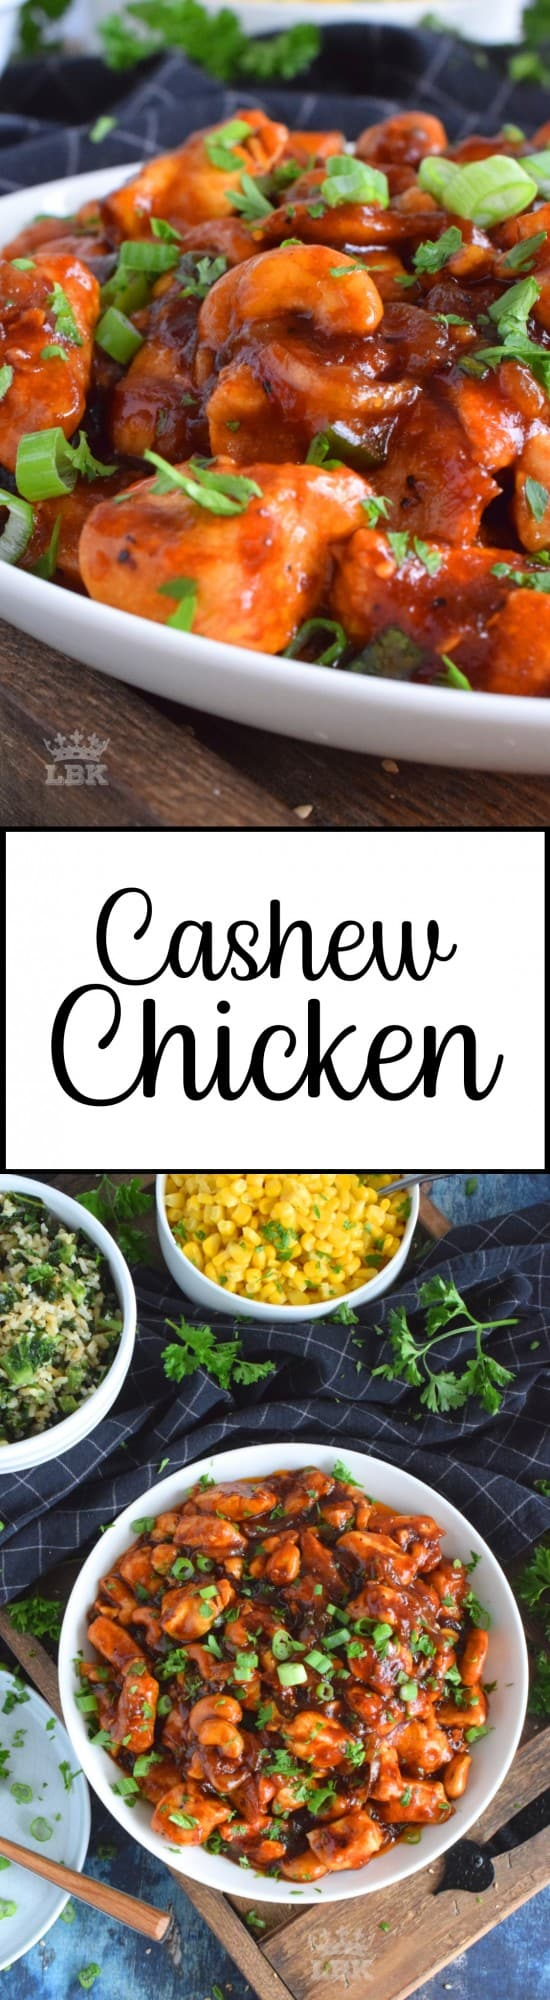 Faster than the time it takes to wait for delivery, Cashew Chicken is made with tender and moist breast meat, whole cashews, and a sweet and savoury sauce.#cashew #chicken #homemade #weeknight